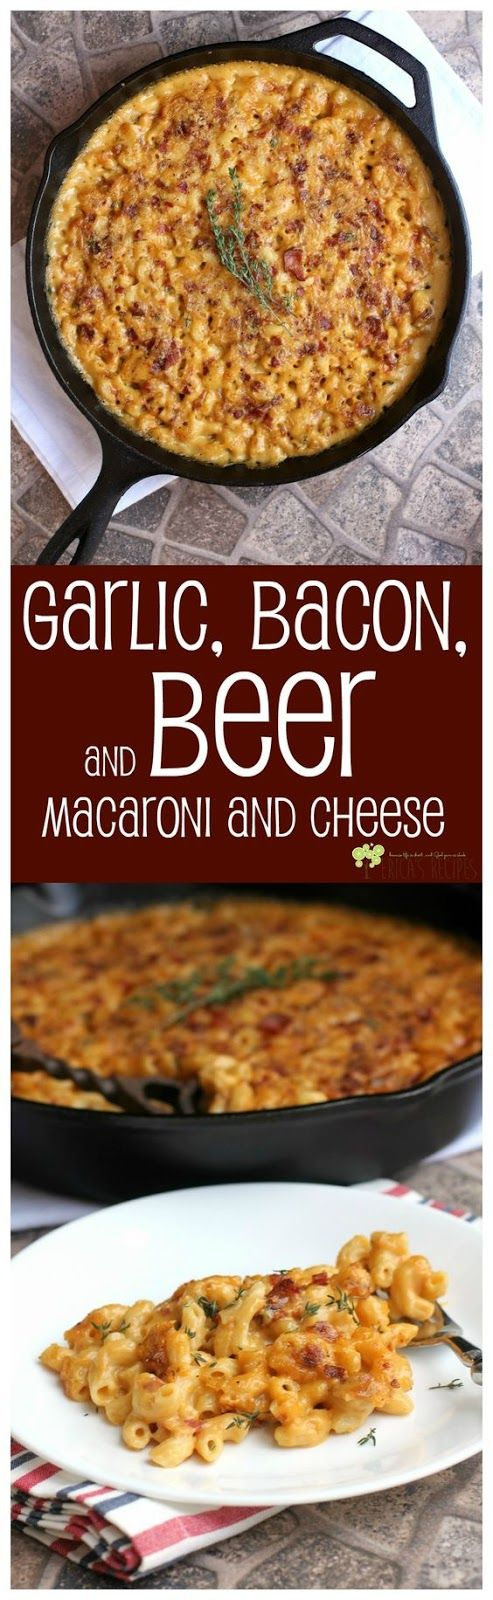 Garlic, Bacon, and Beer Macaroni and Cheese | Food And Cake Recipes